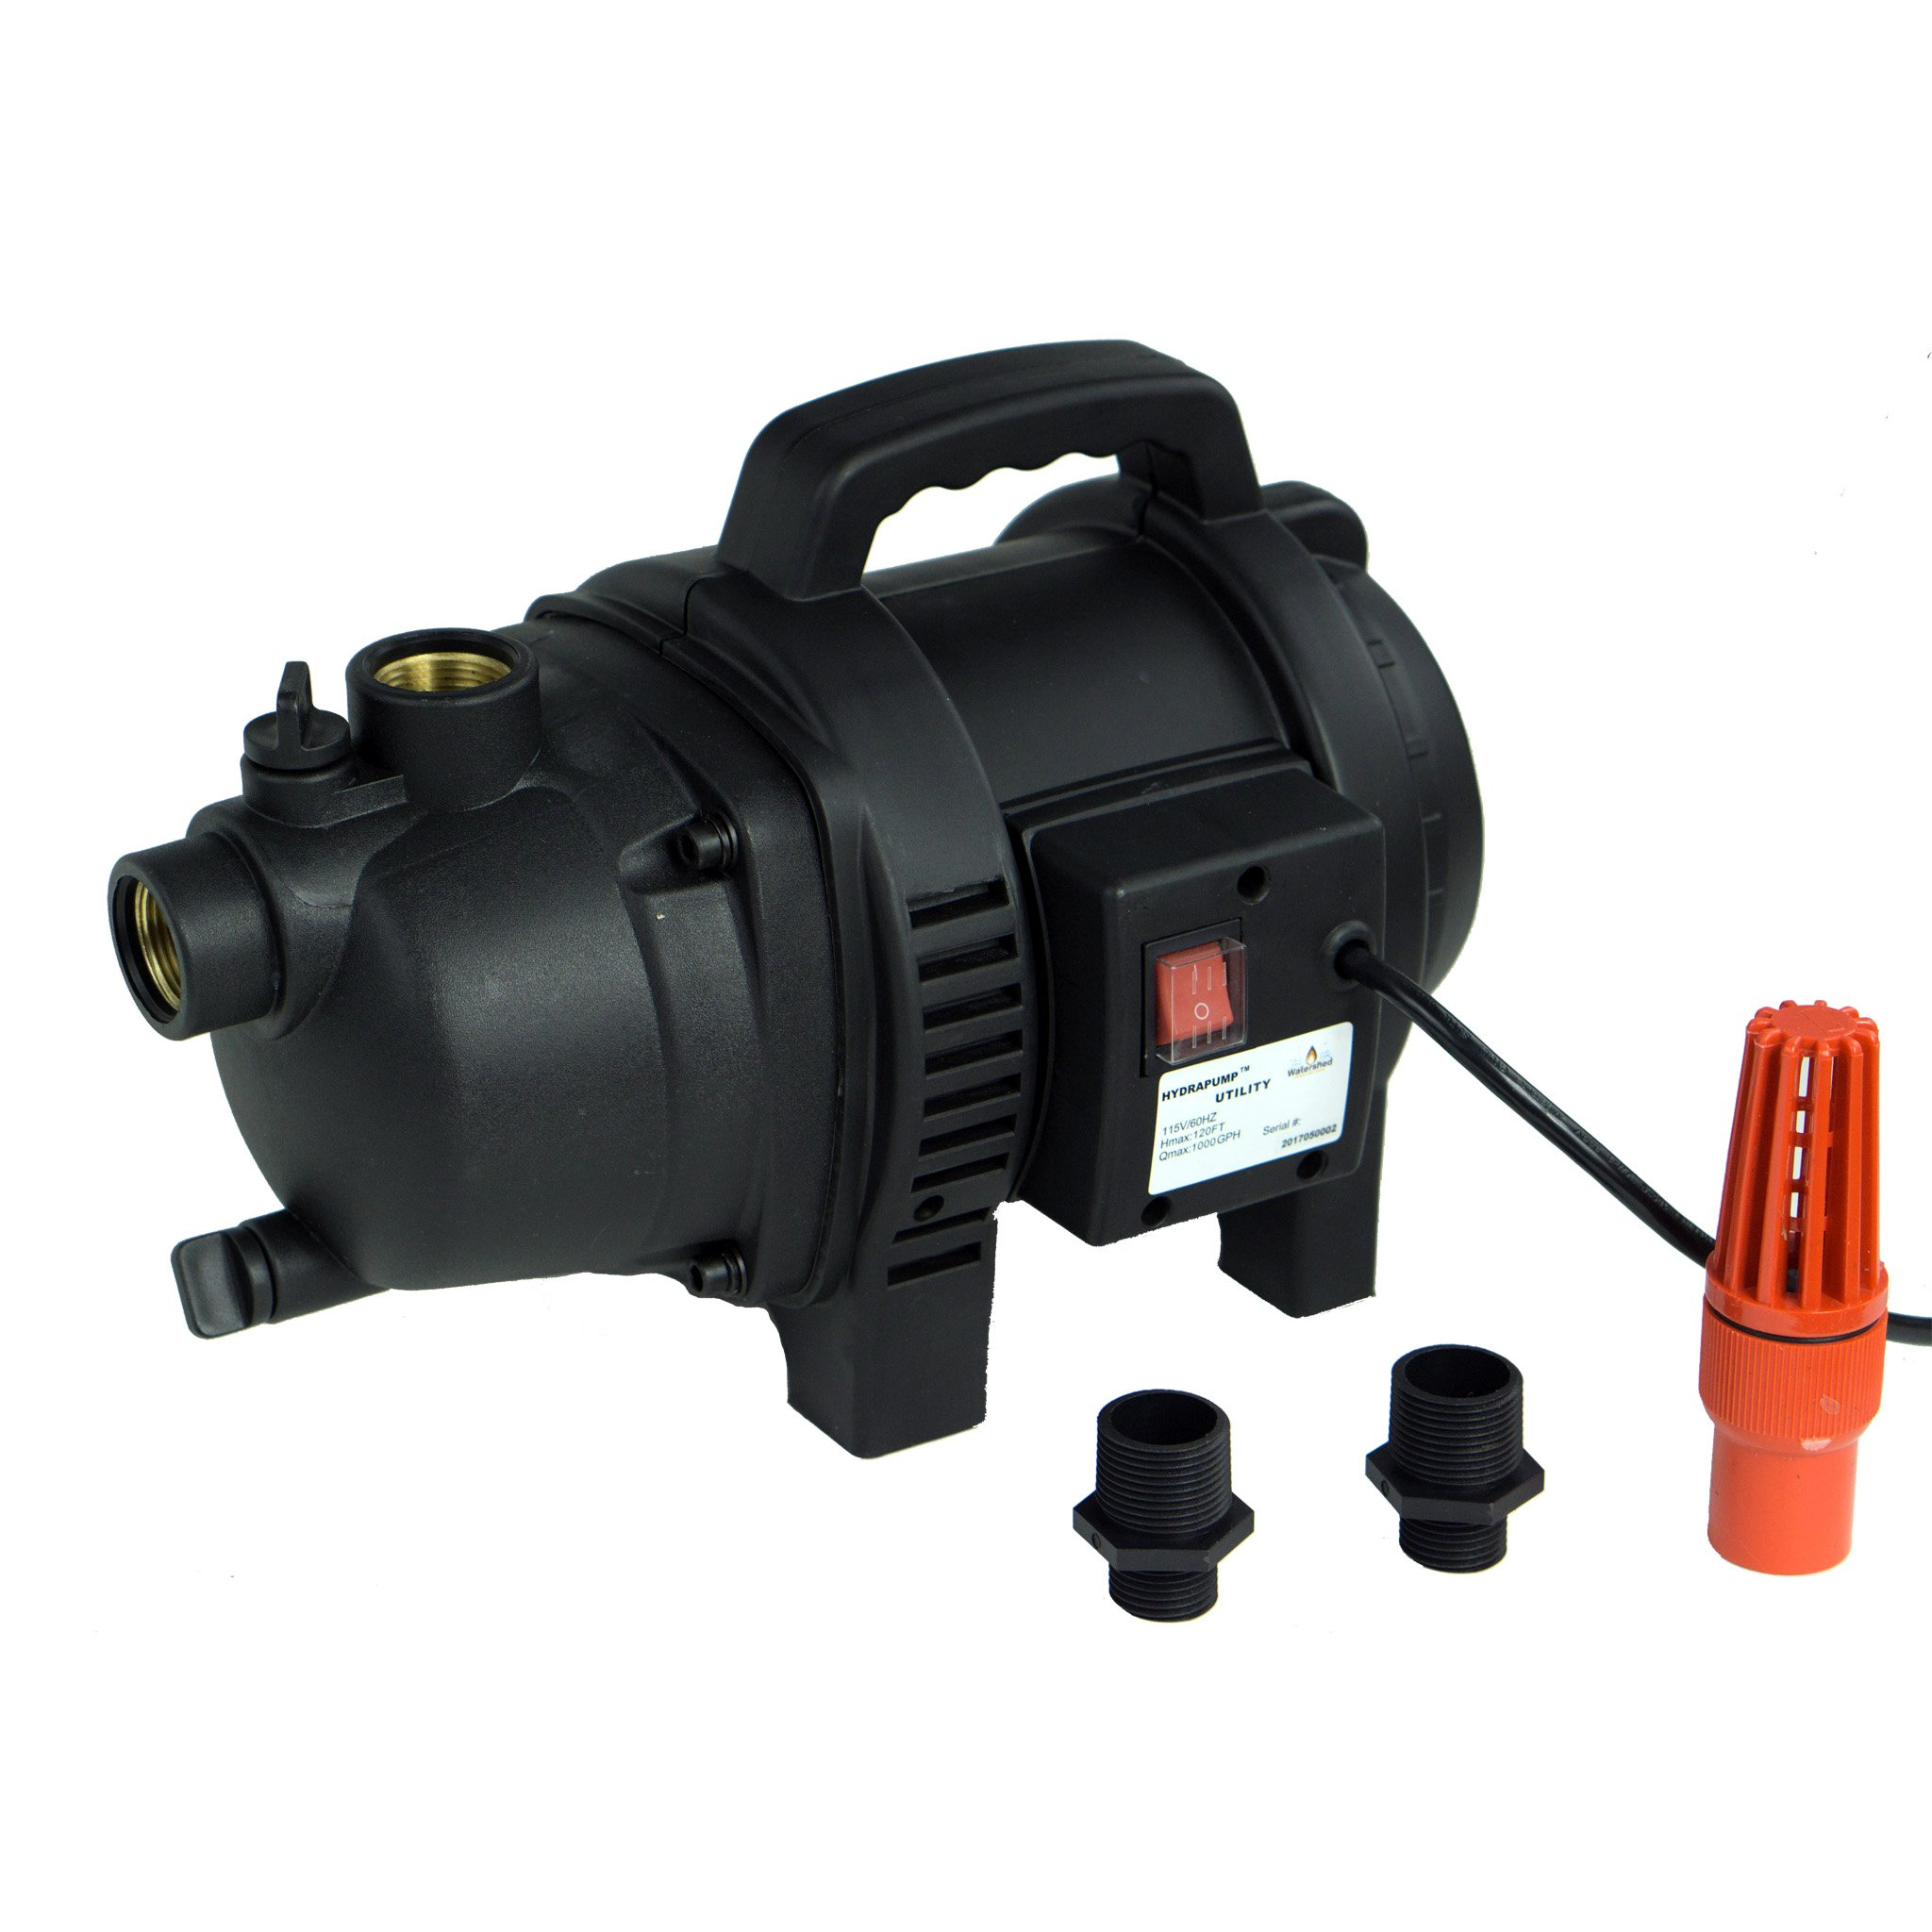 HydraPump Utility – 120V 1HP 1,000 GPH Powerful and Lightweight Utility Water Pump with Two 3/4'' Garden Hose Adapters and Bonus foot Valve by Watershed Innovations